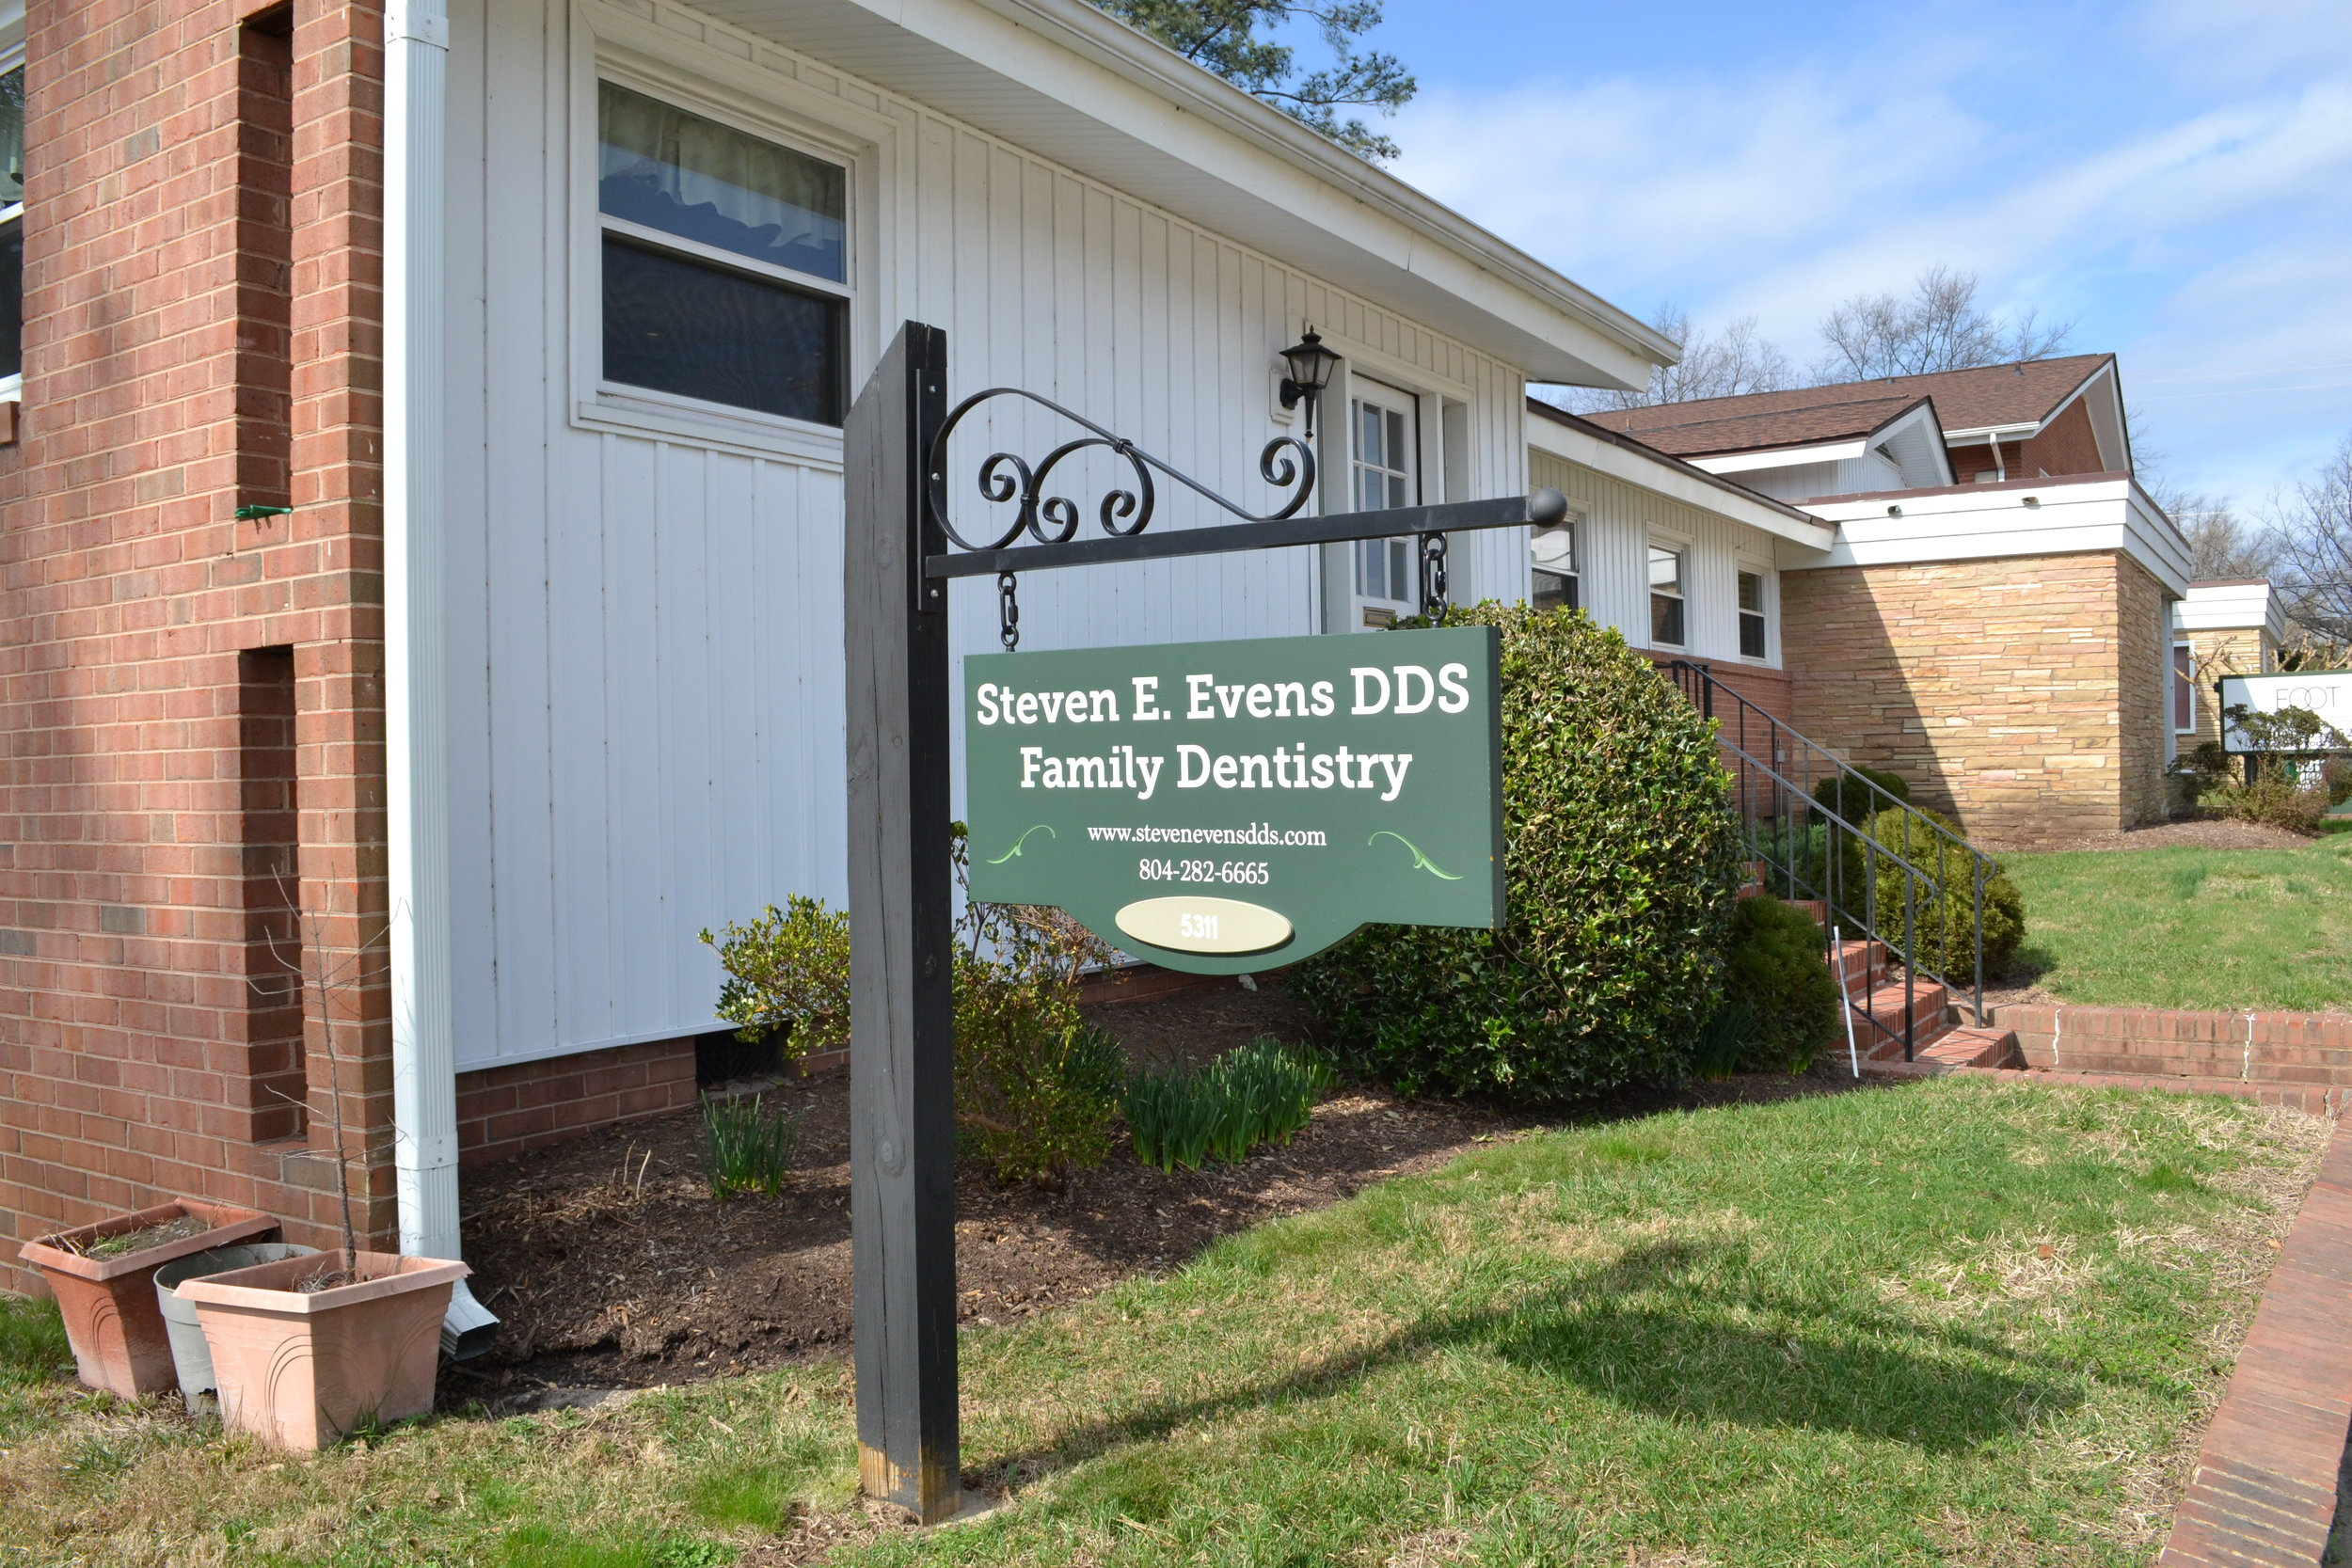 Steven E. Evens DDS Family Dentistry - 5311 Patterson Avenue, Richmond VA, 23226